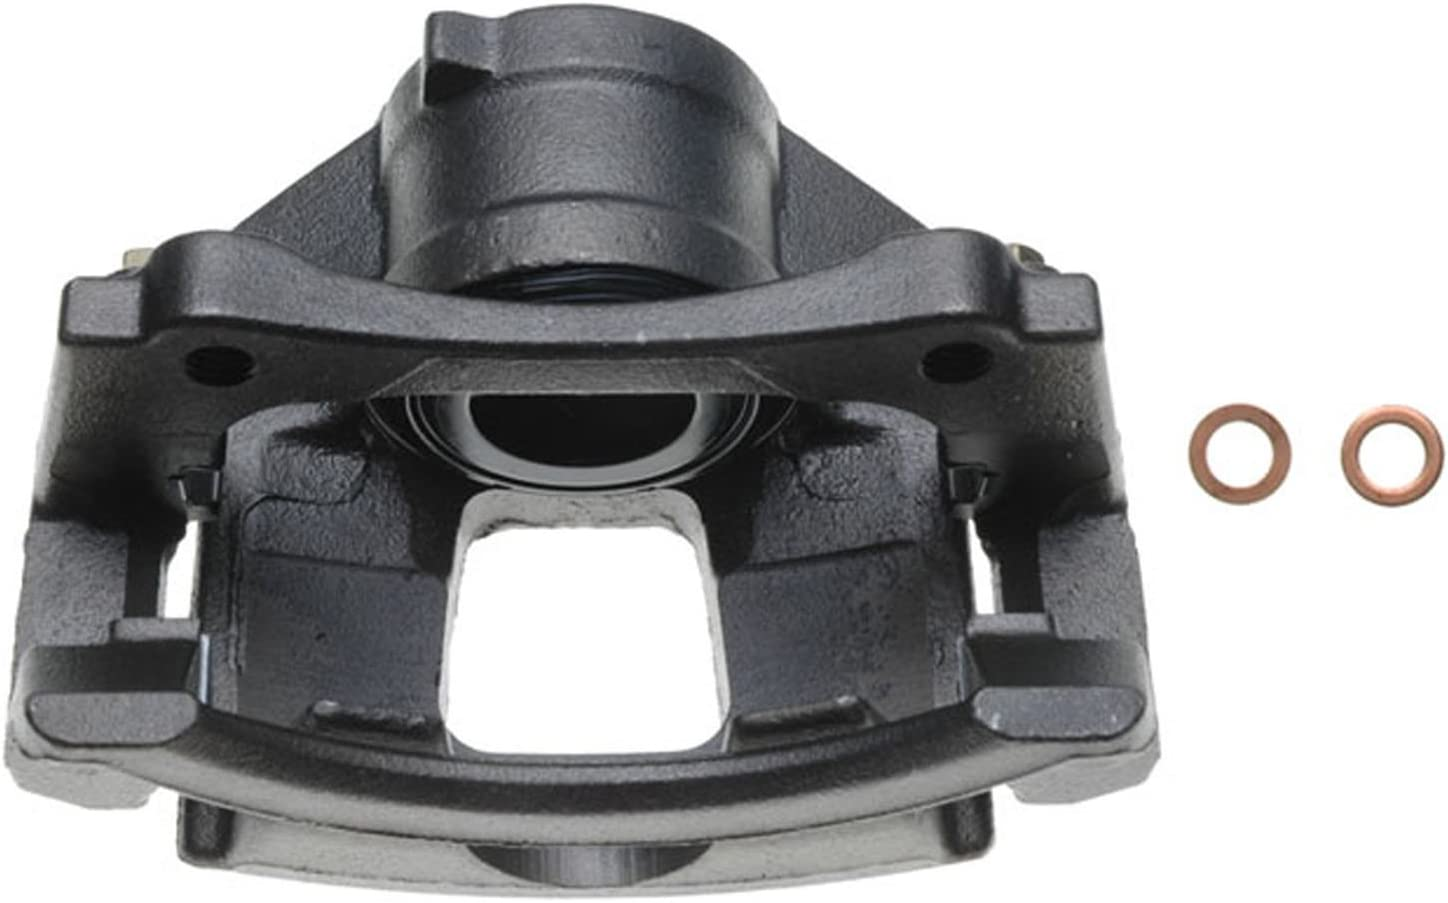 Remanufactured ACDelco 18FR1873 Professional Durastop Front Driver Side Disc Brake Caliper Assembly without Pads Friction Ready